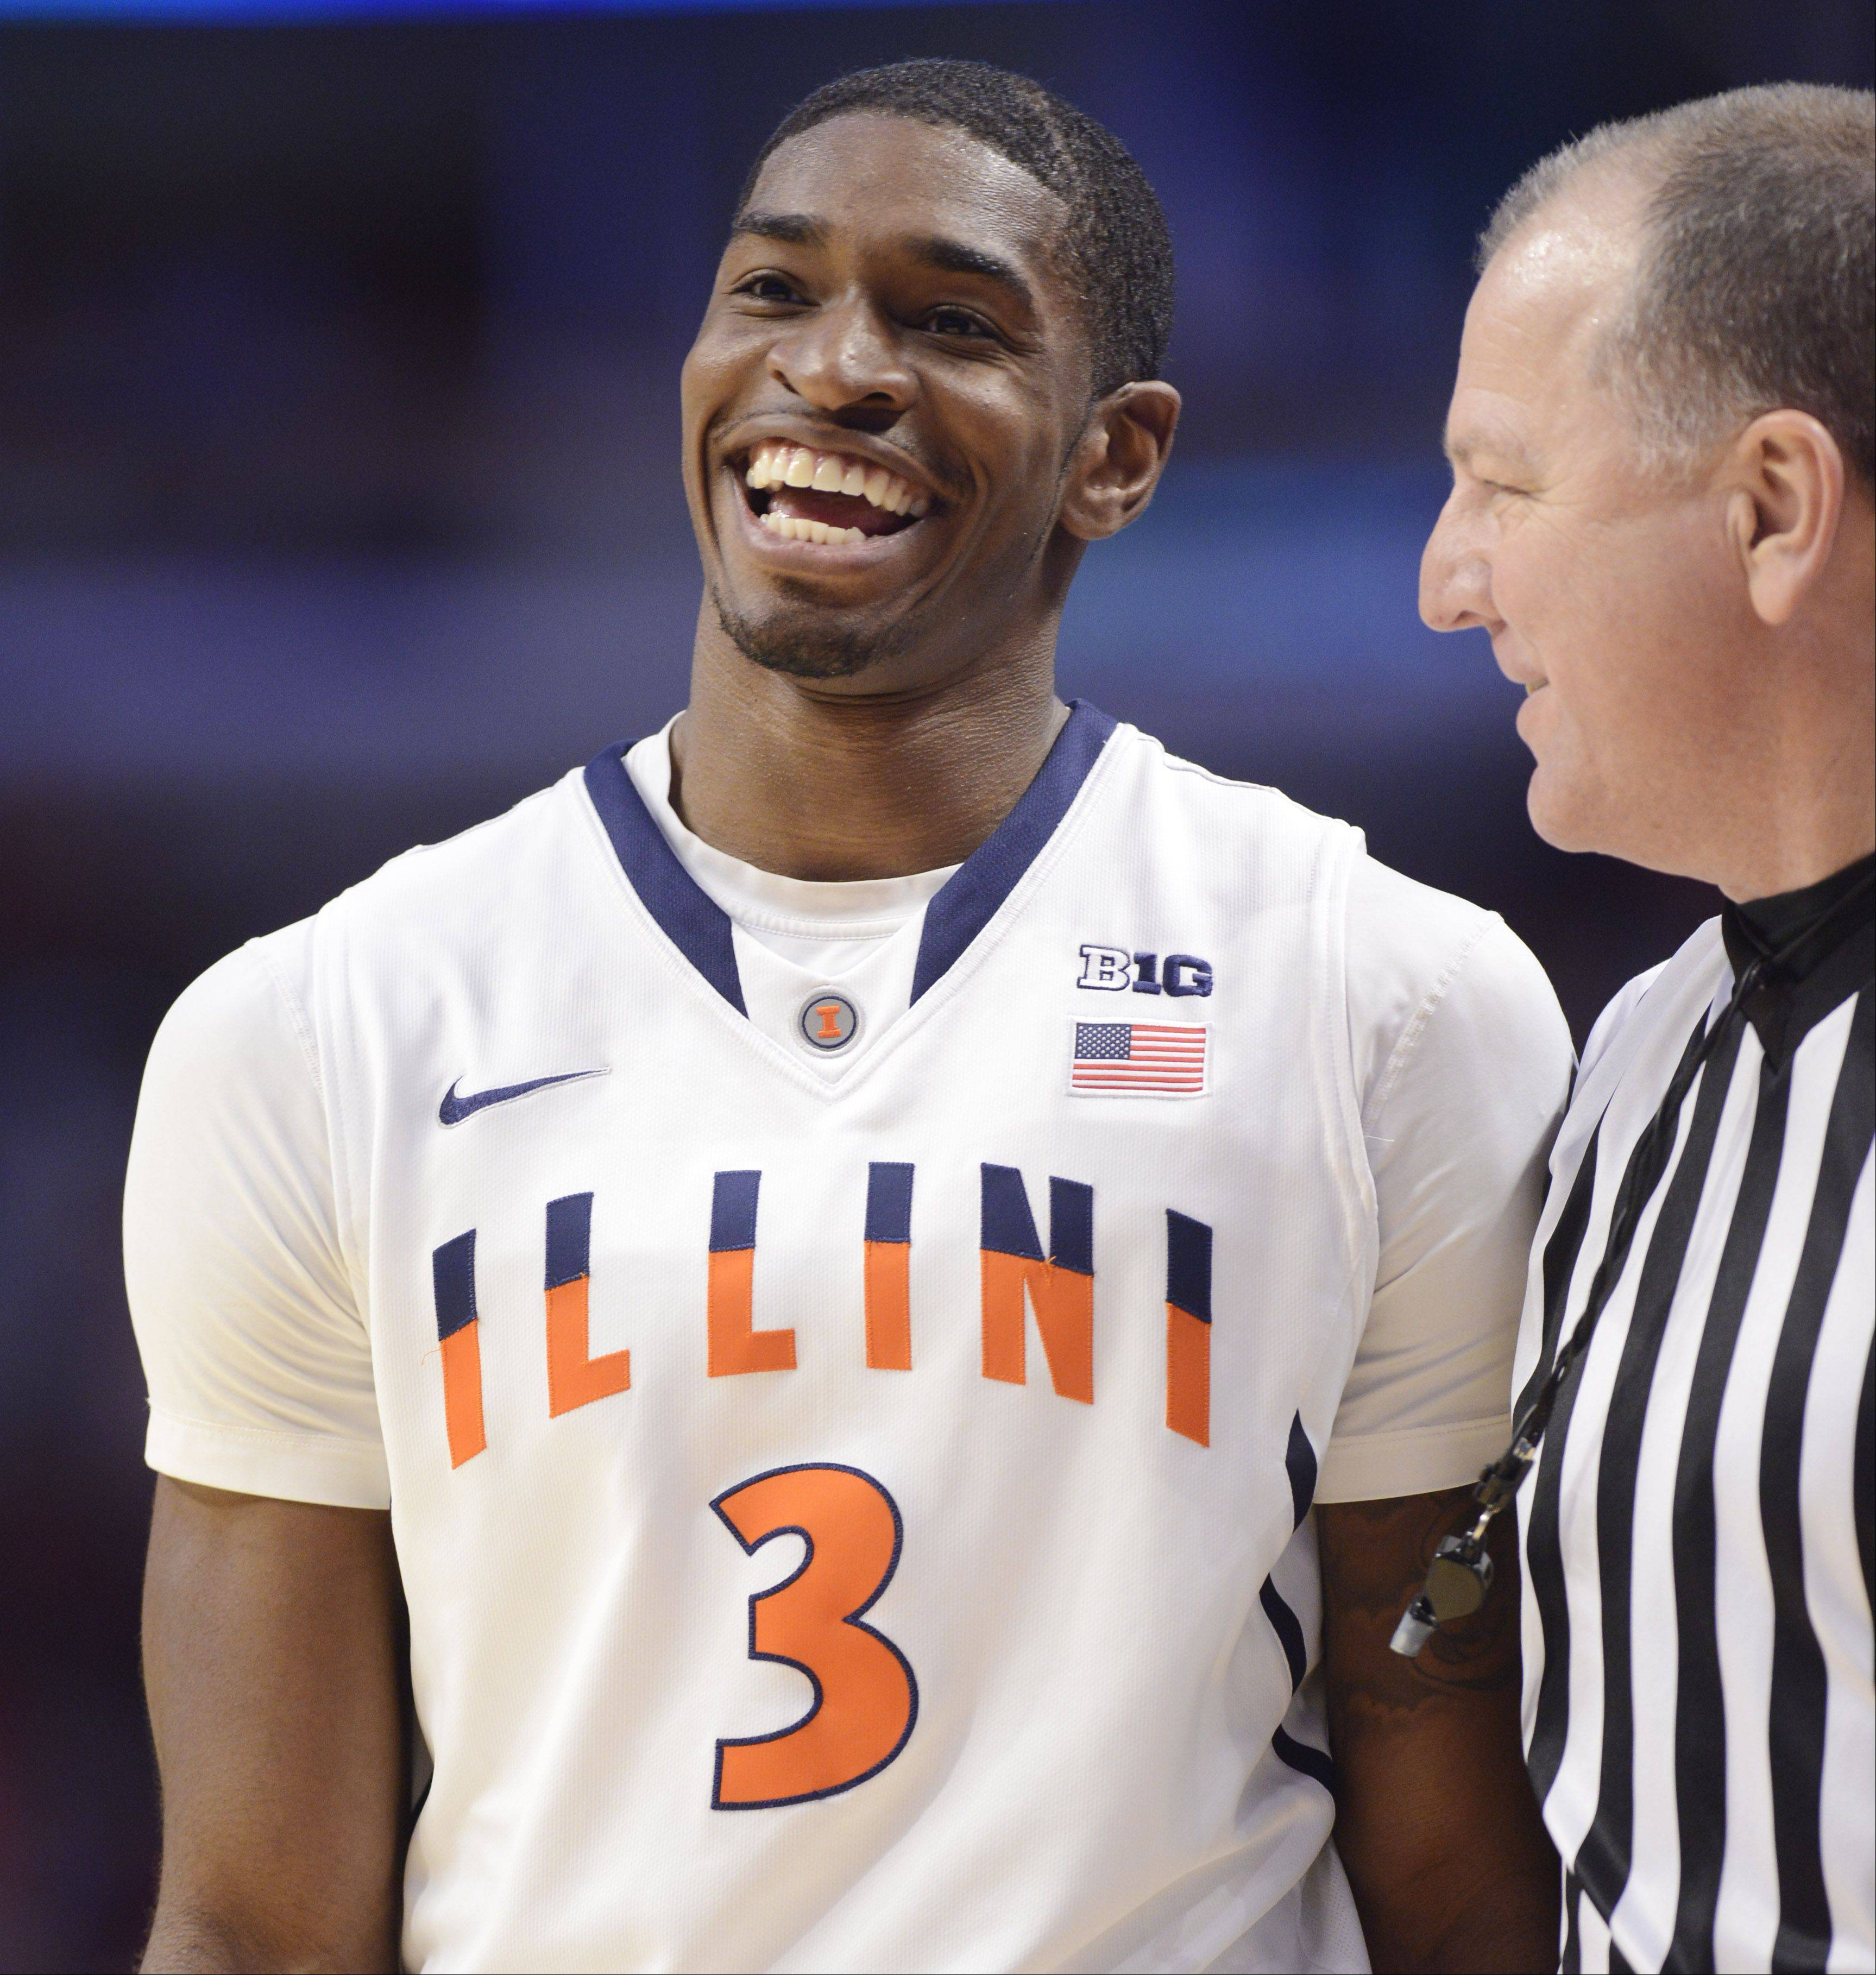 Illinois senior guard Brandon Paul, who was a star at Warren Township High School, will lead his team into the NCAA tournament on Friday against Colorado.